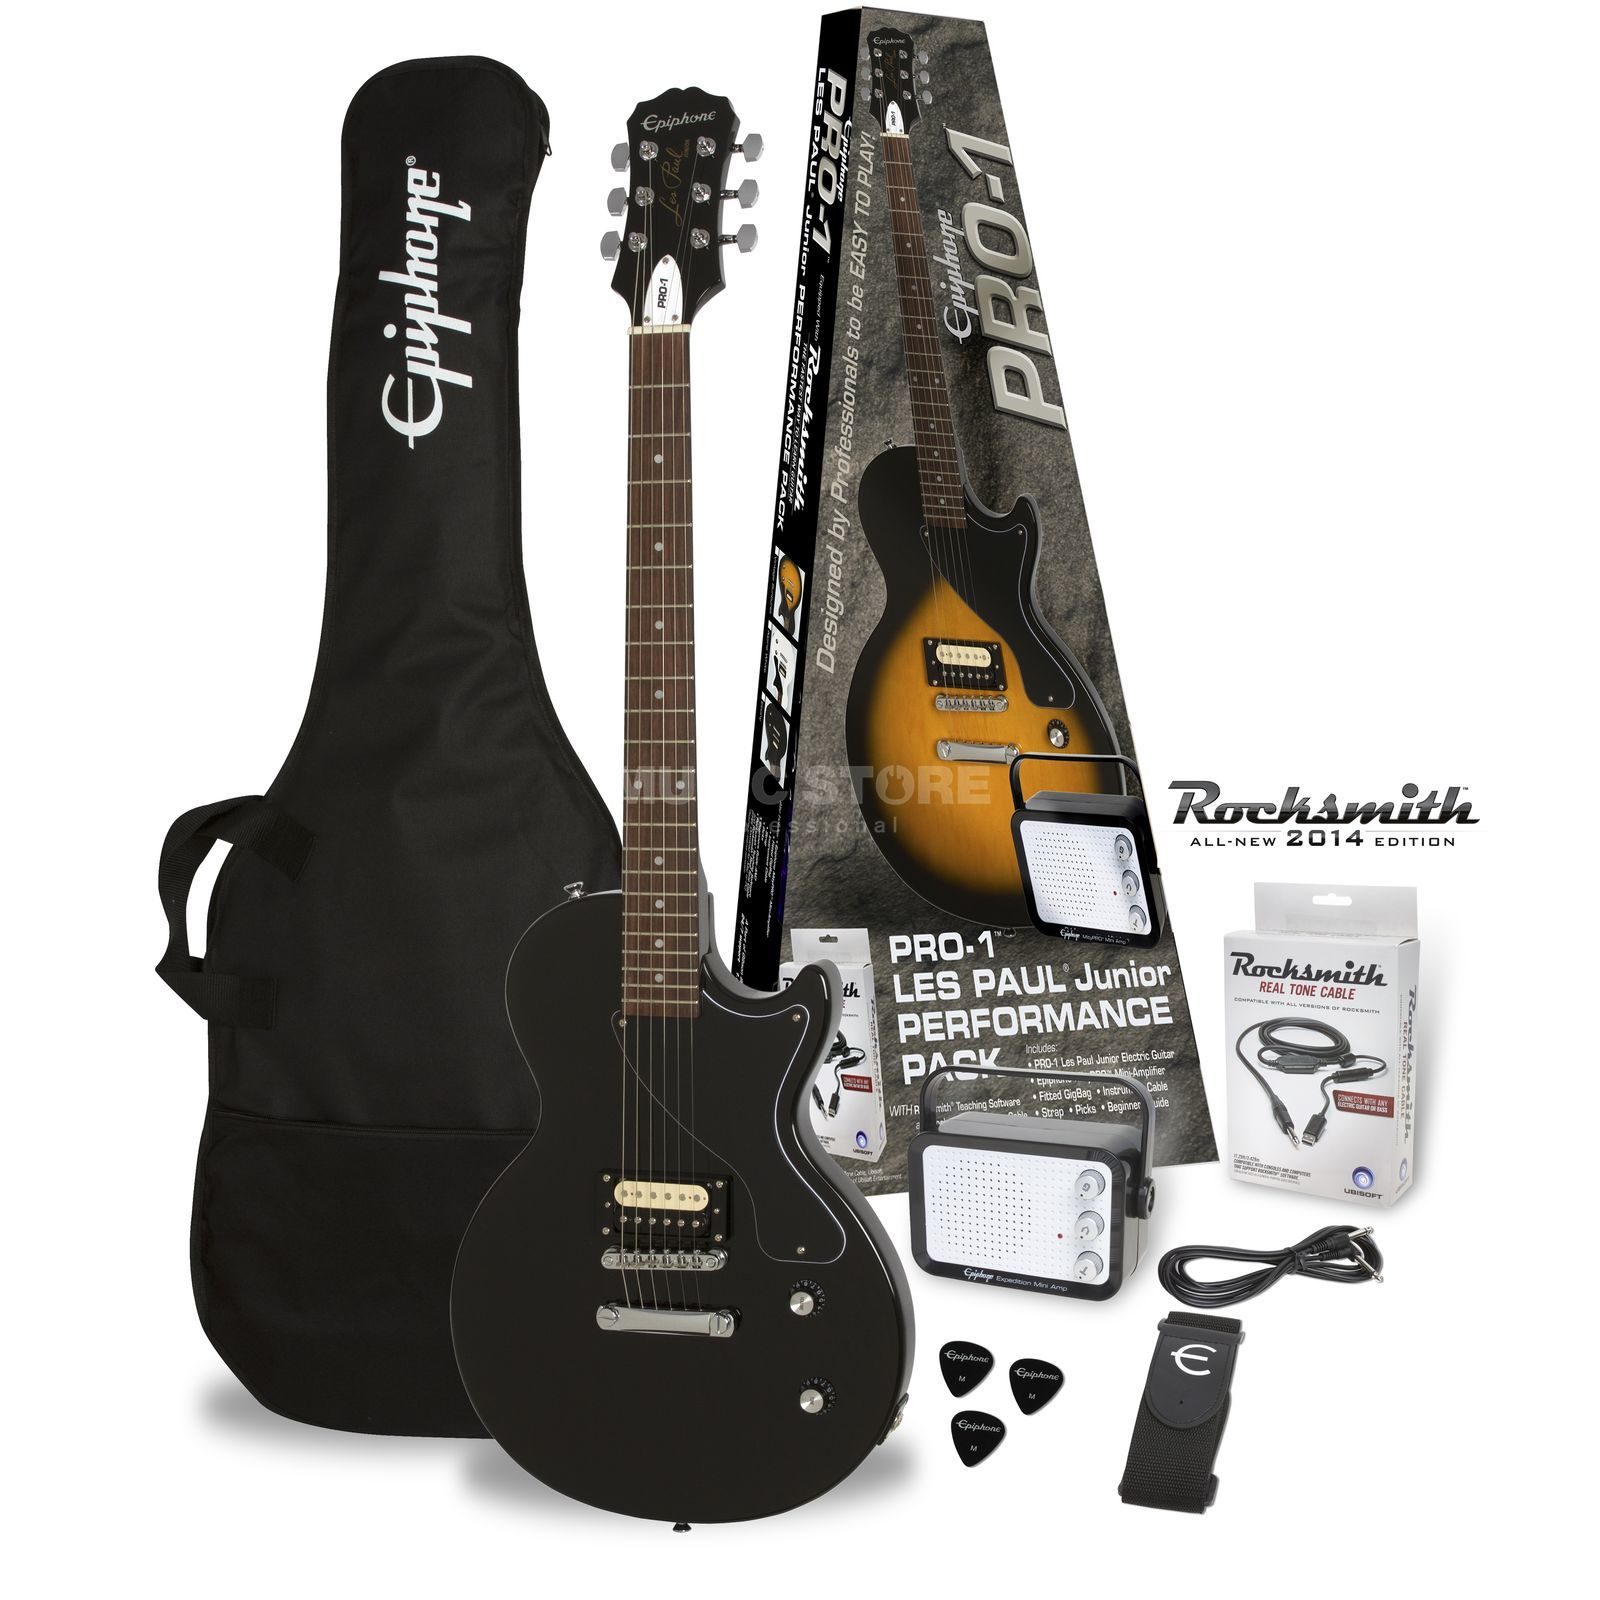 Epiphone PRO-1 Les Paul Junior Performance Pack Ebony Produktbillede